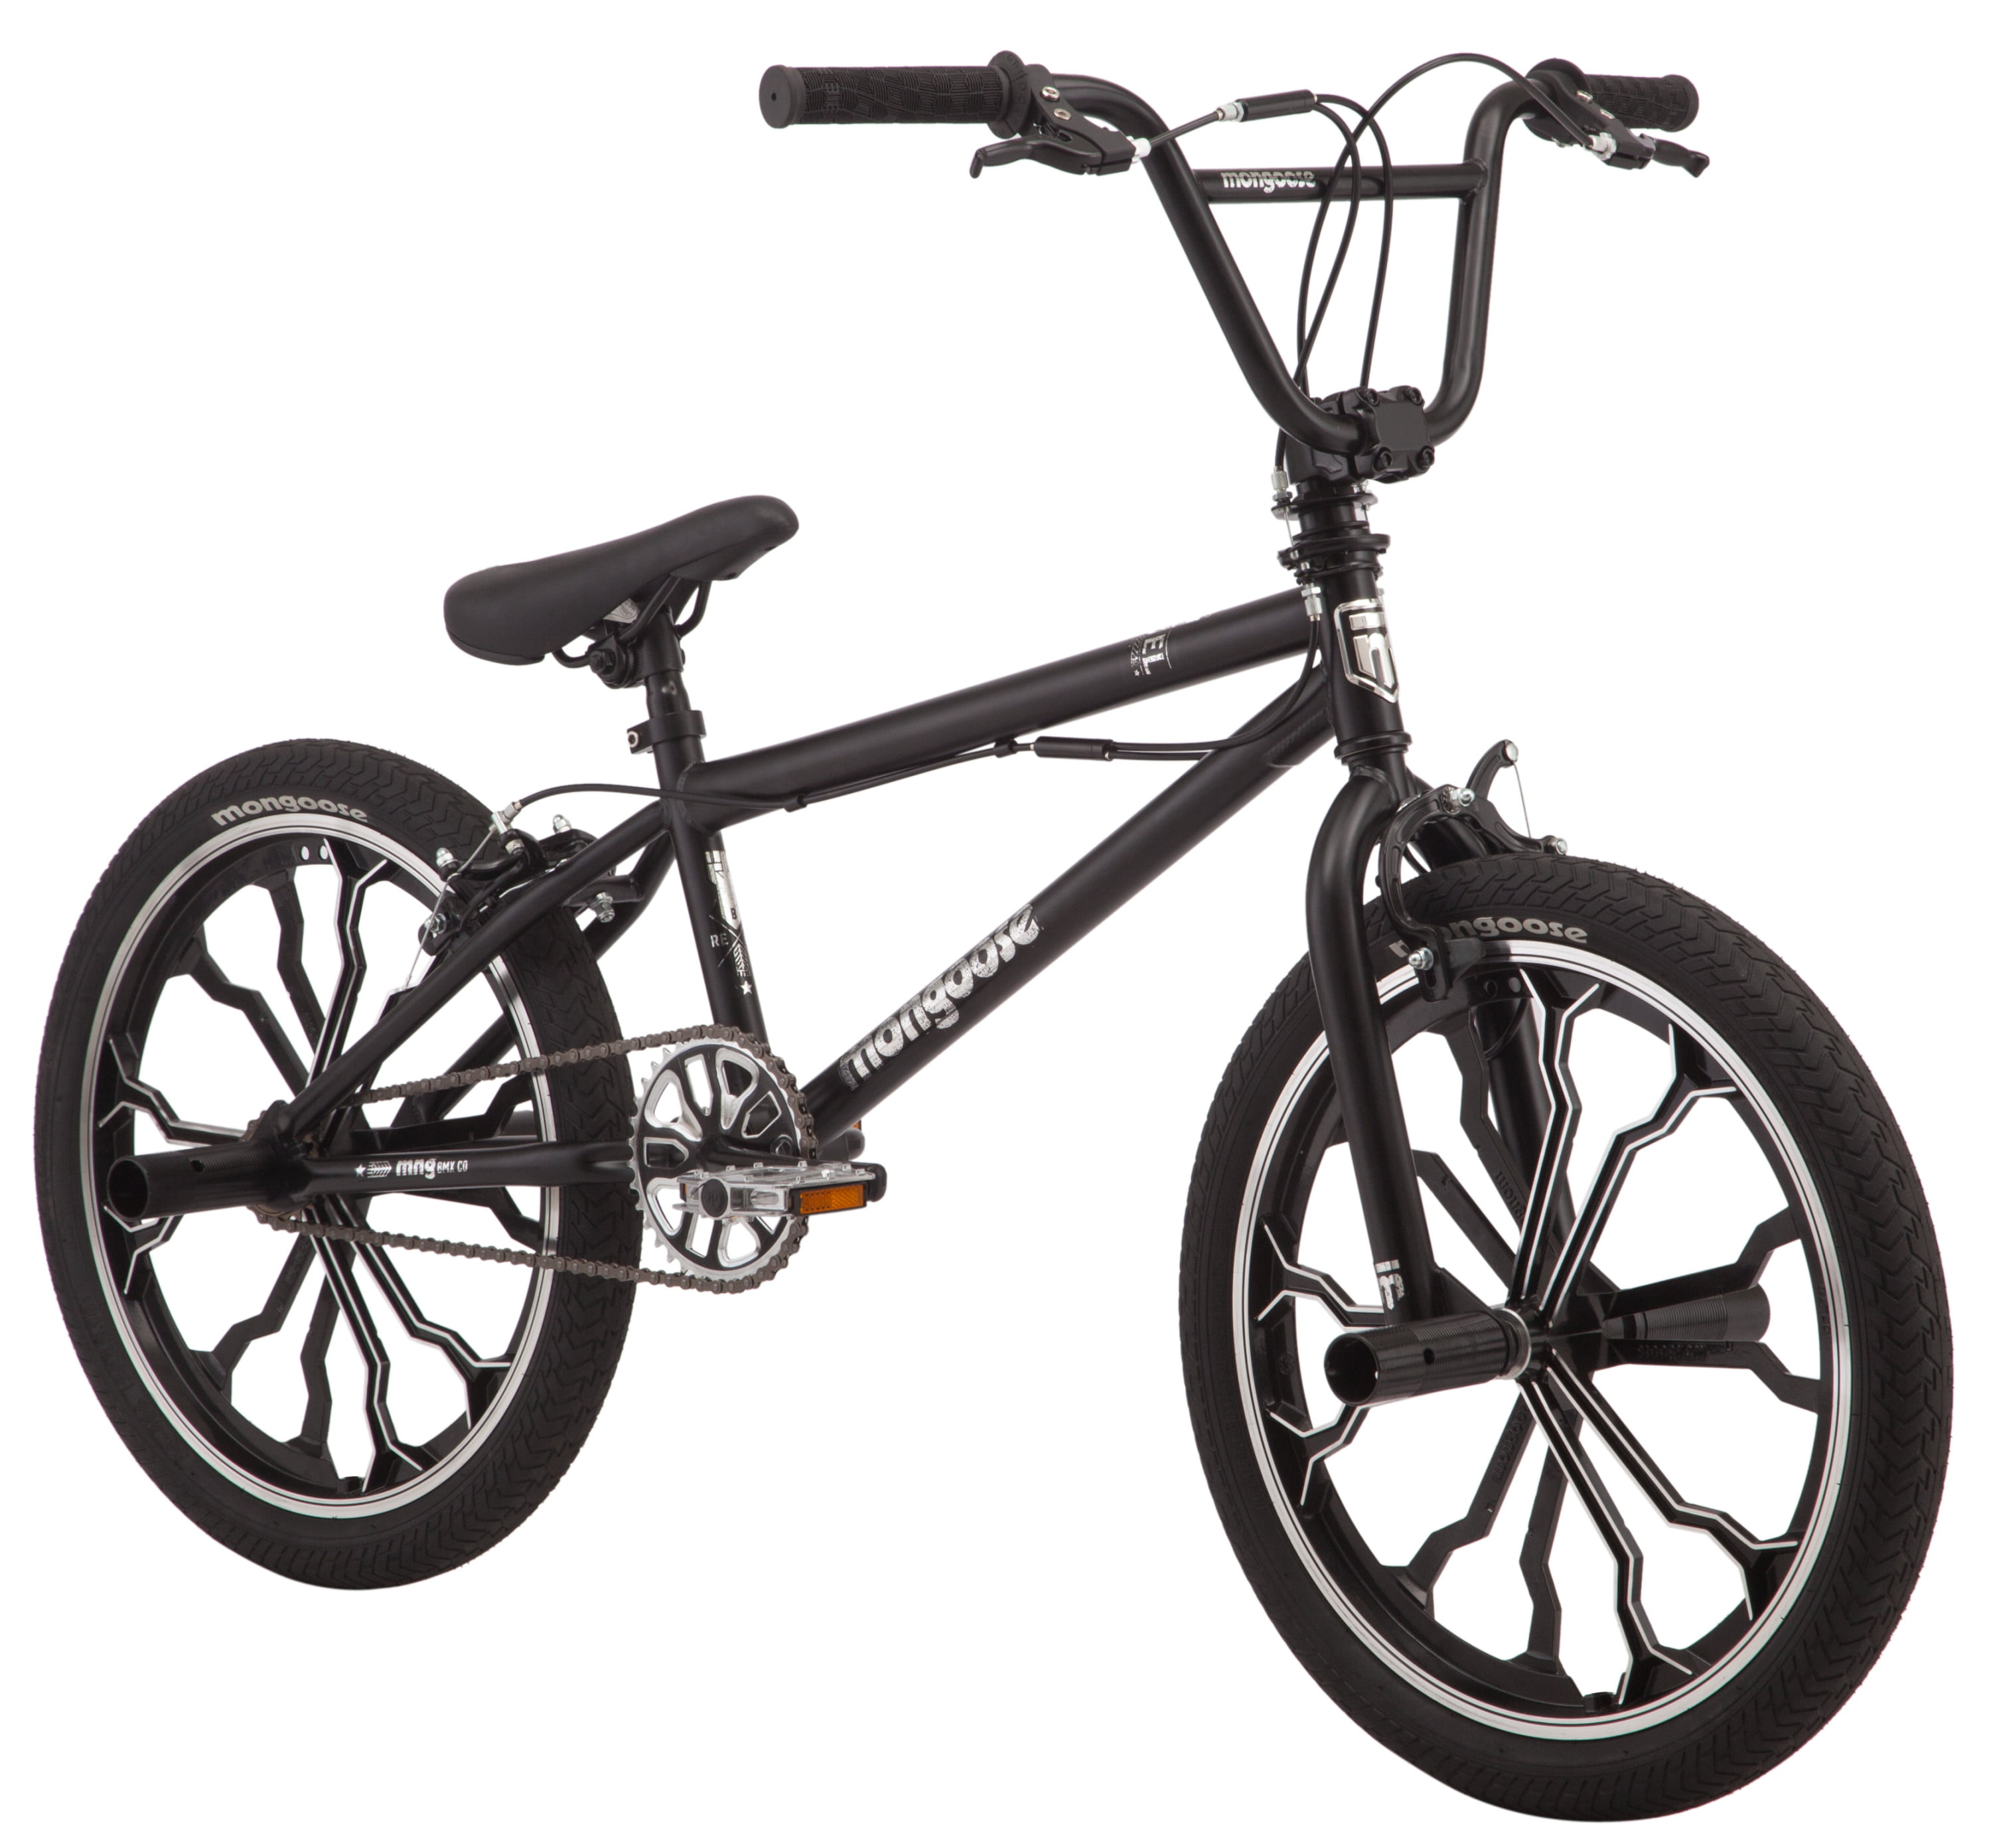 Mongoose Rebel BMX bicycle. Mag Wheel size 20 inches, black, kids style by Pacific Cycle